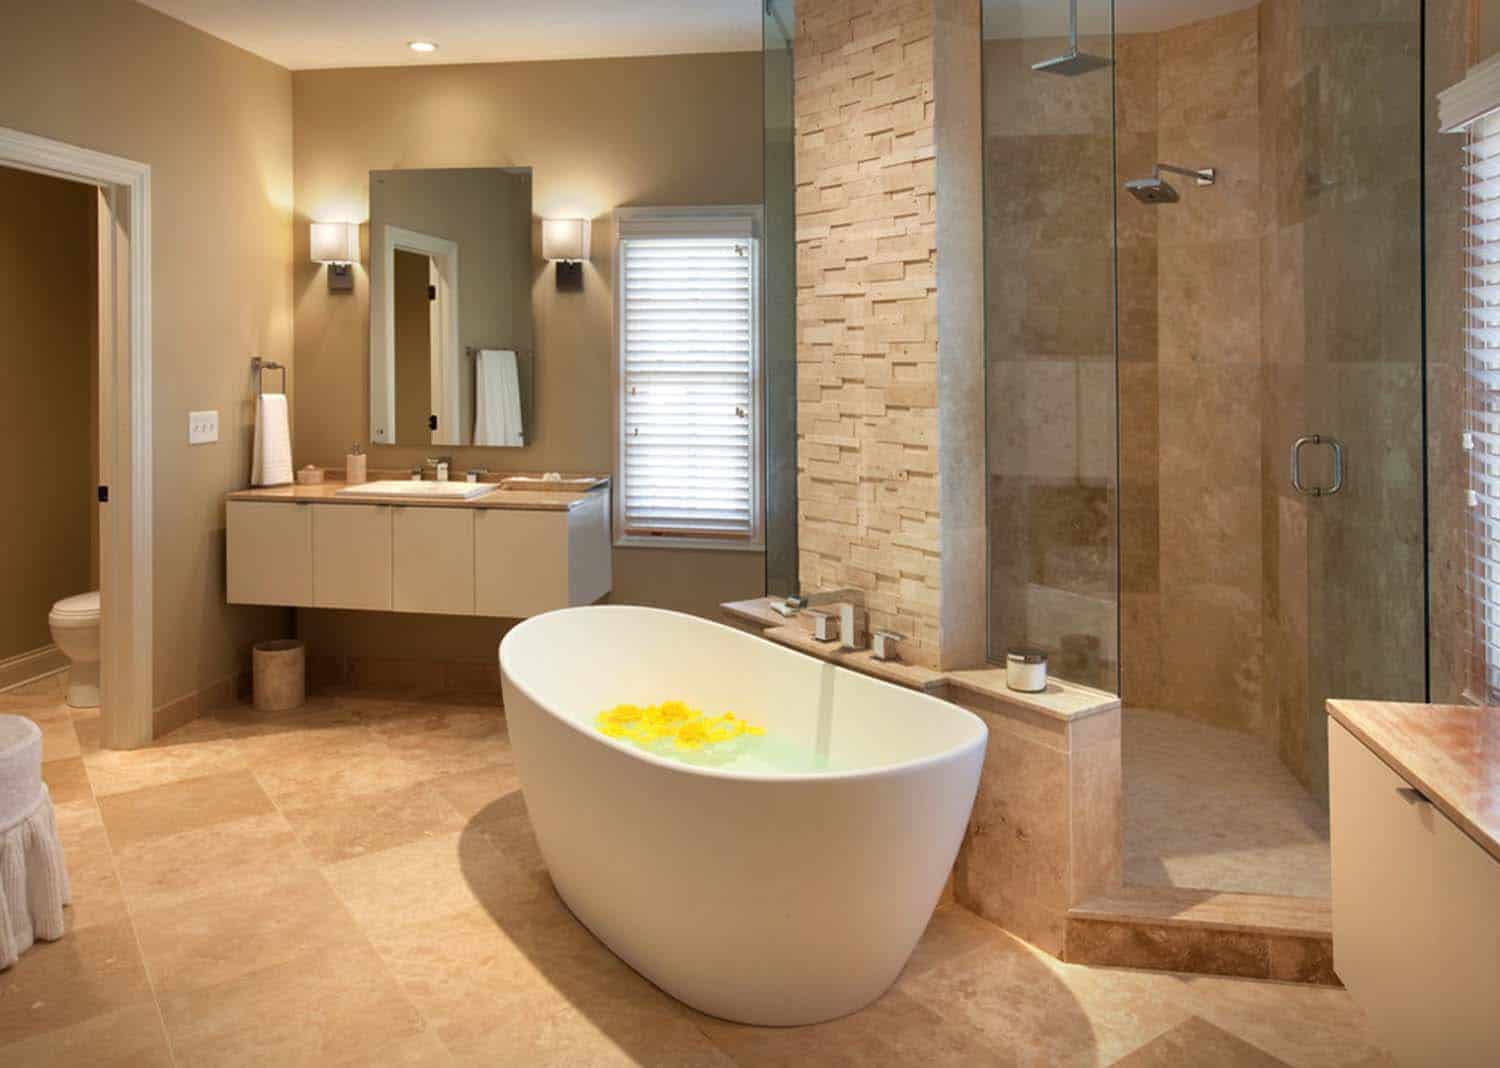 Freestanding-Tubs-Bathroom-Ideas-08-1 Kindesign